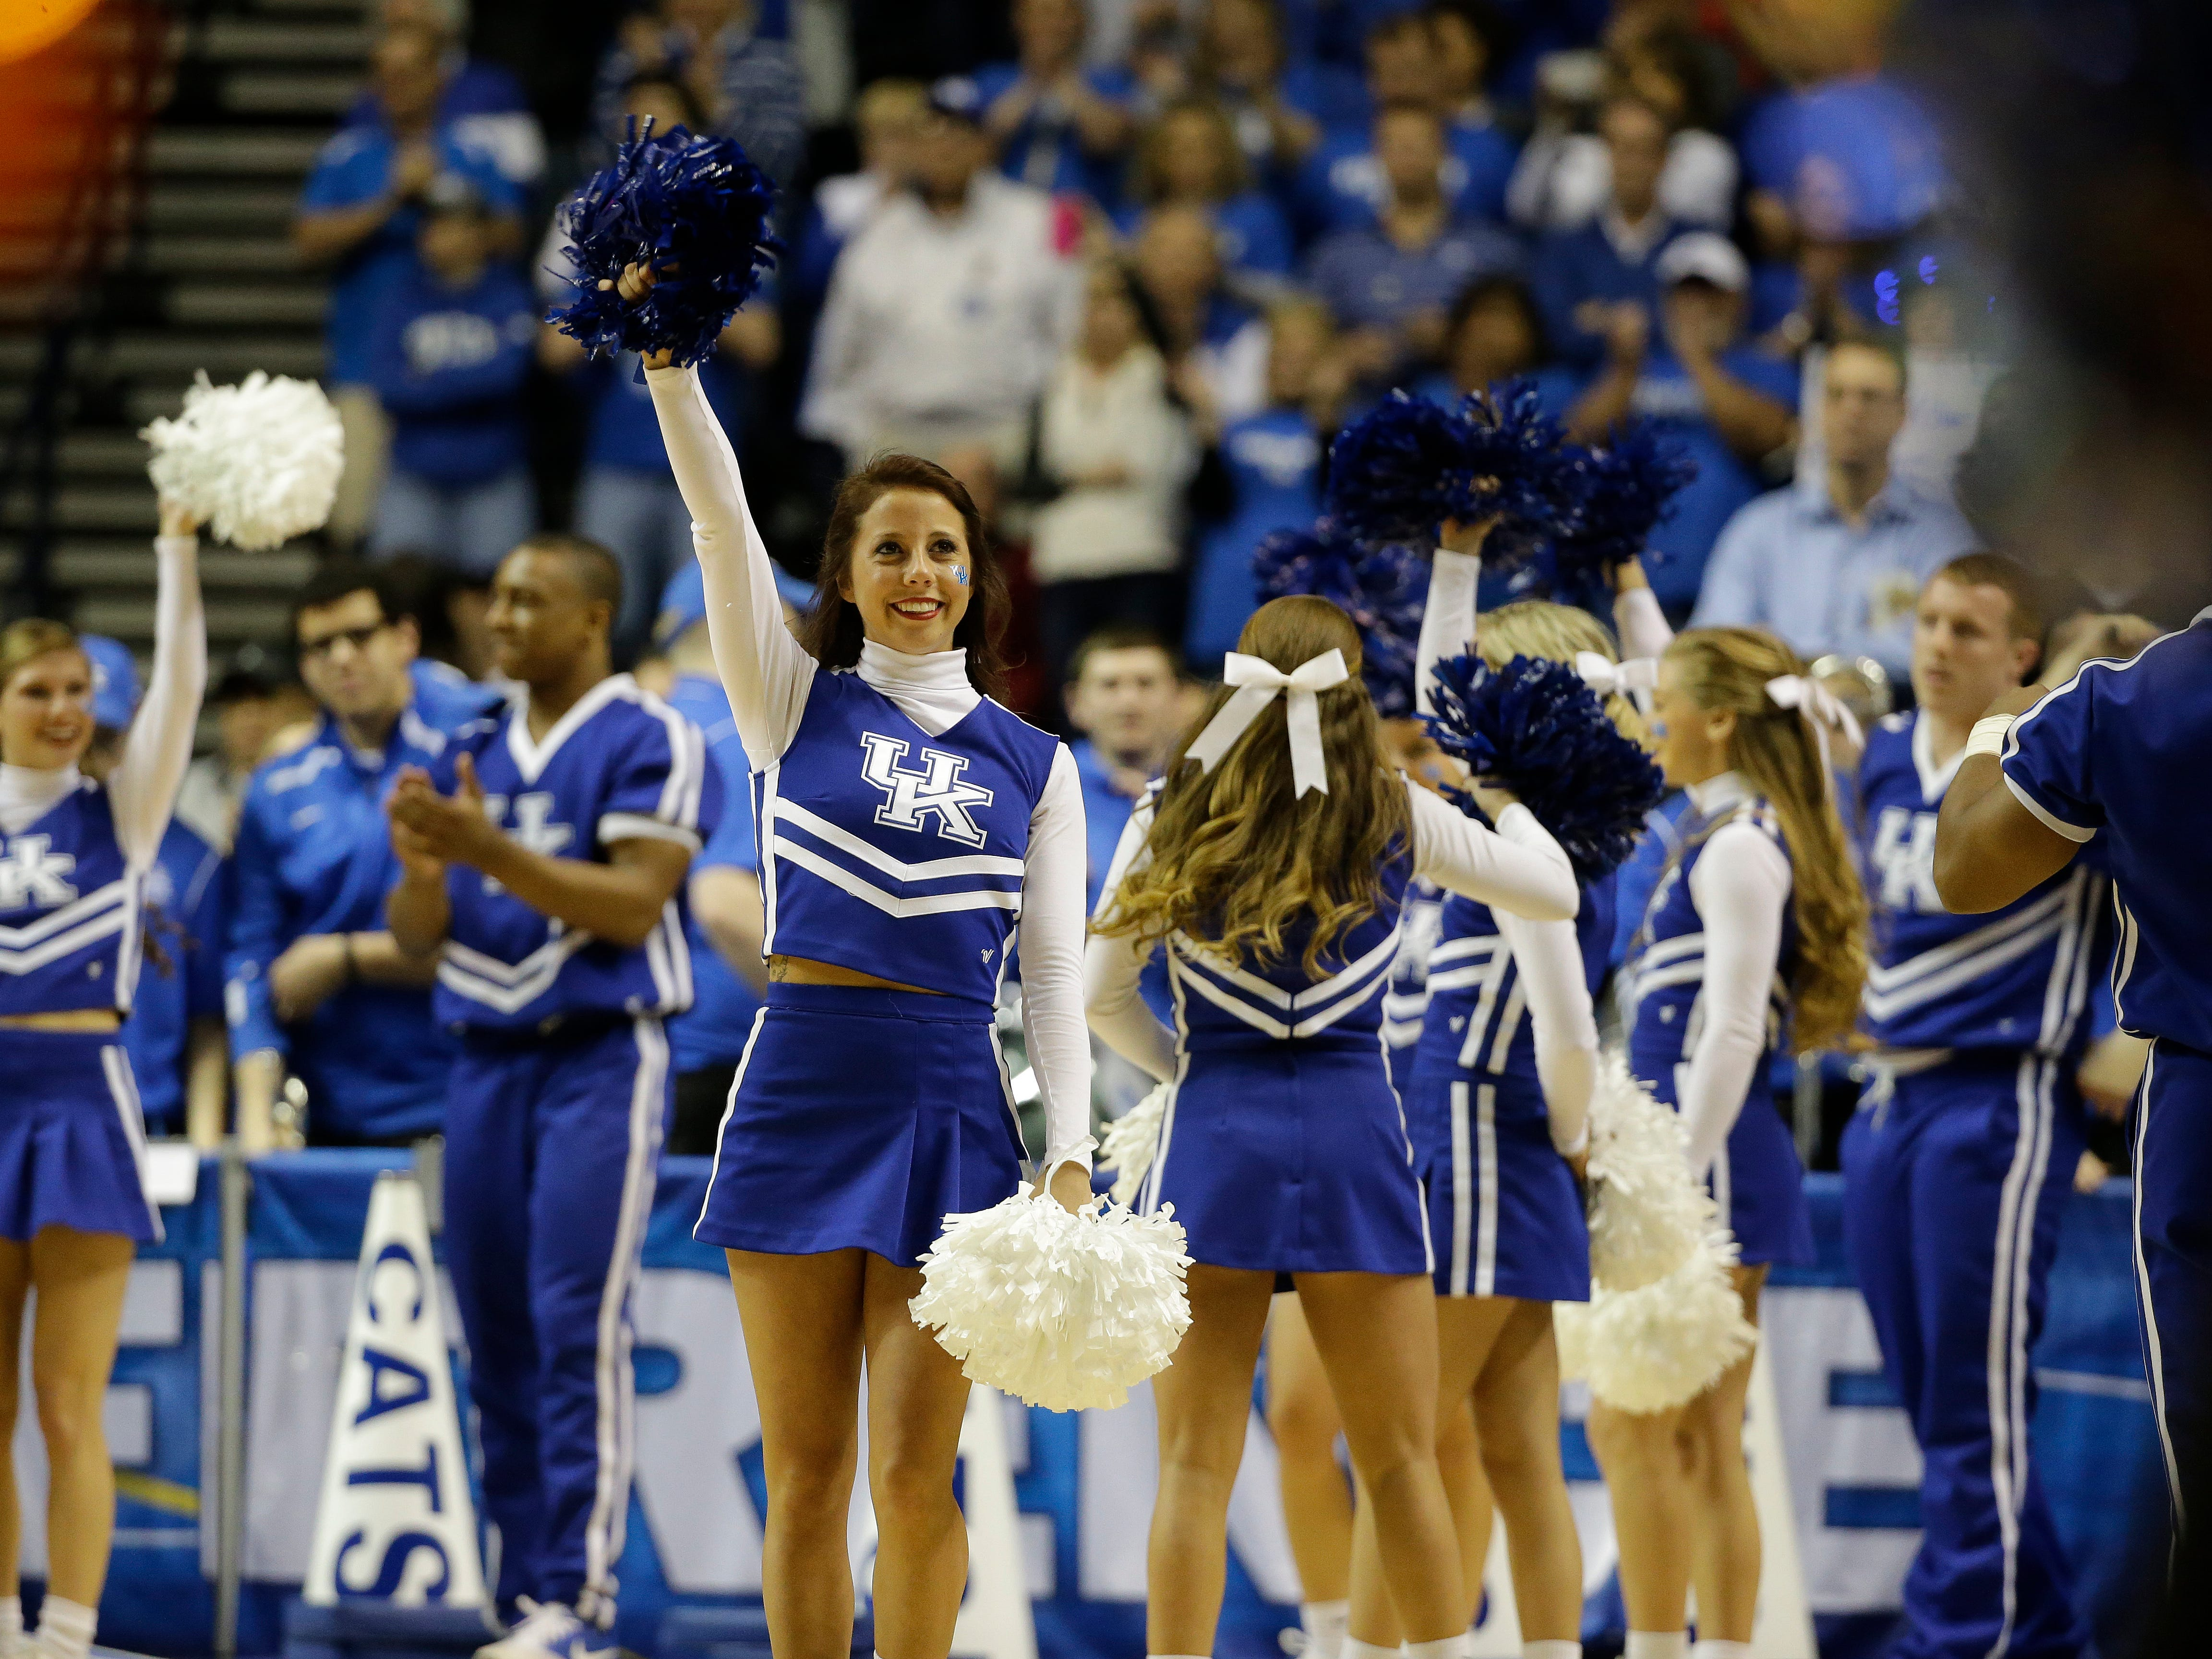 Kentucky cheerleaders perform during the first half of an NCAA college basketball game in the quarter final round of the Southeastern Conference tournament between Kentucky and Florida, Friday, March 13, 2015, in Nashville, Tenn. (AP Photo/Mark Humphrey)